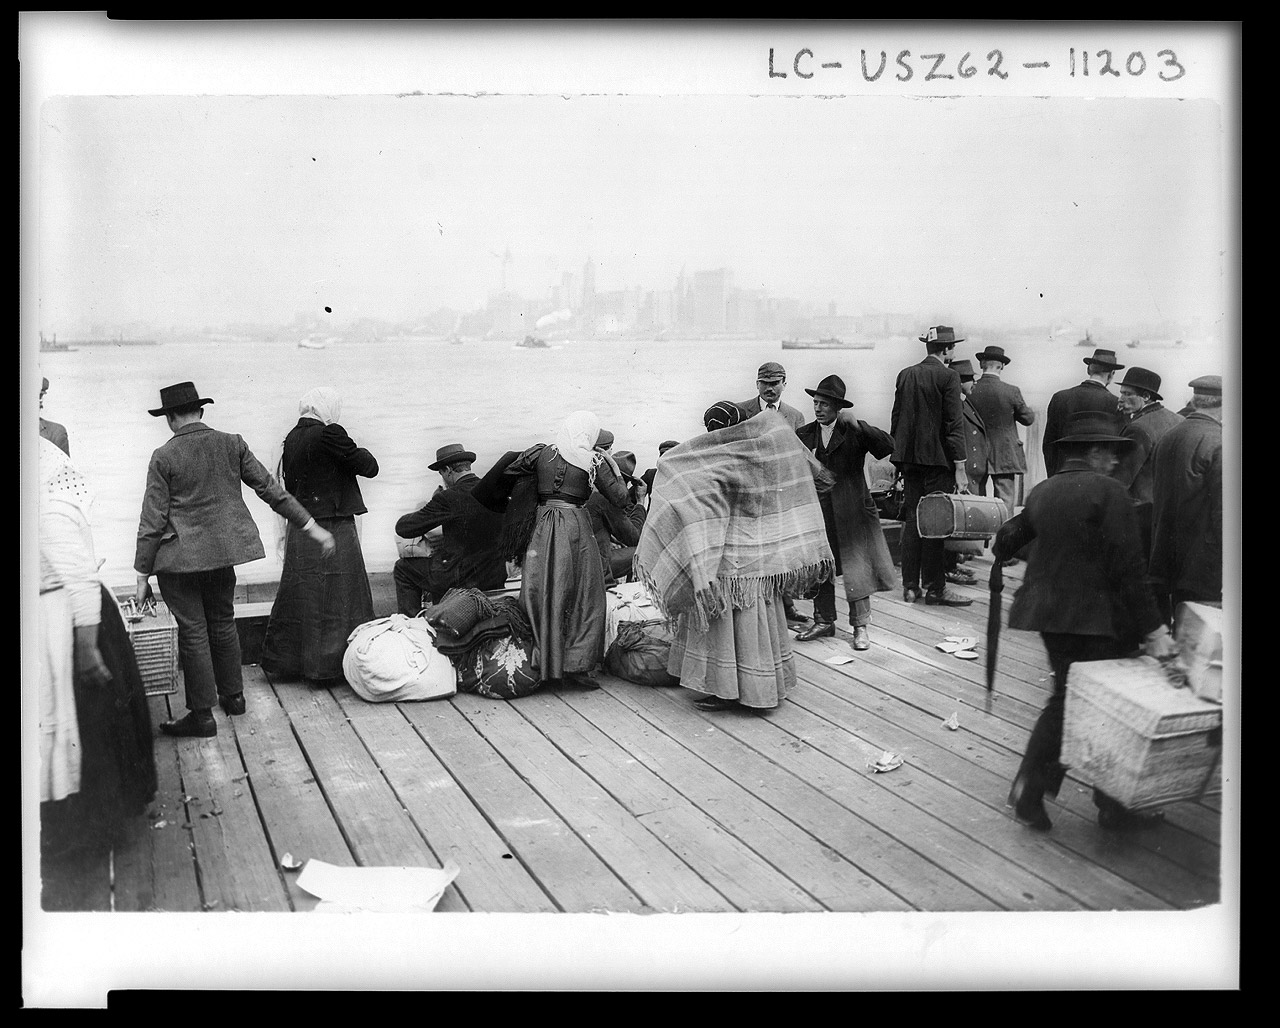 Immigrants waiting to be transferred, Ellis Island, Oct. 30, 1912